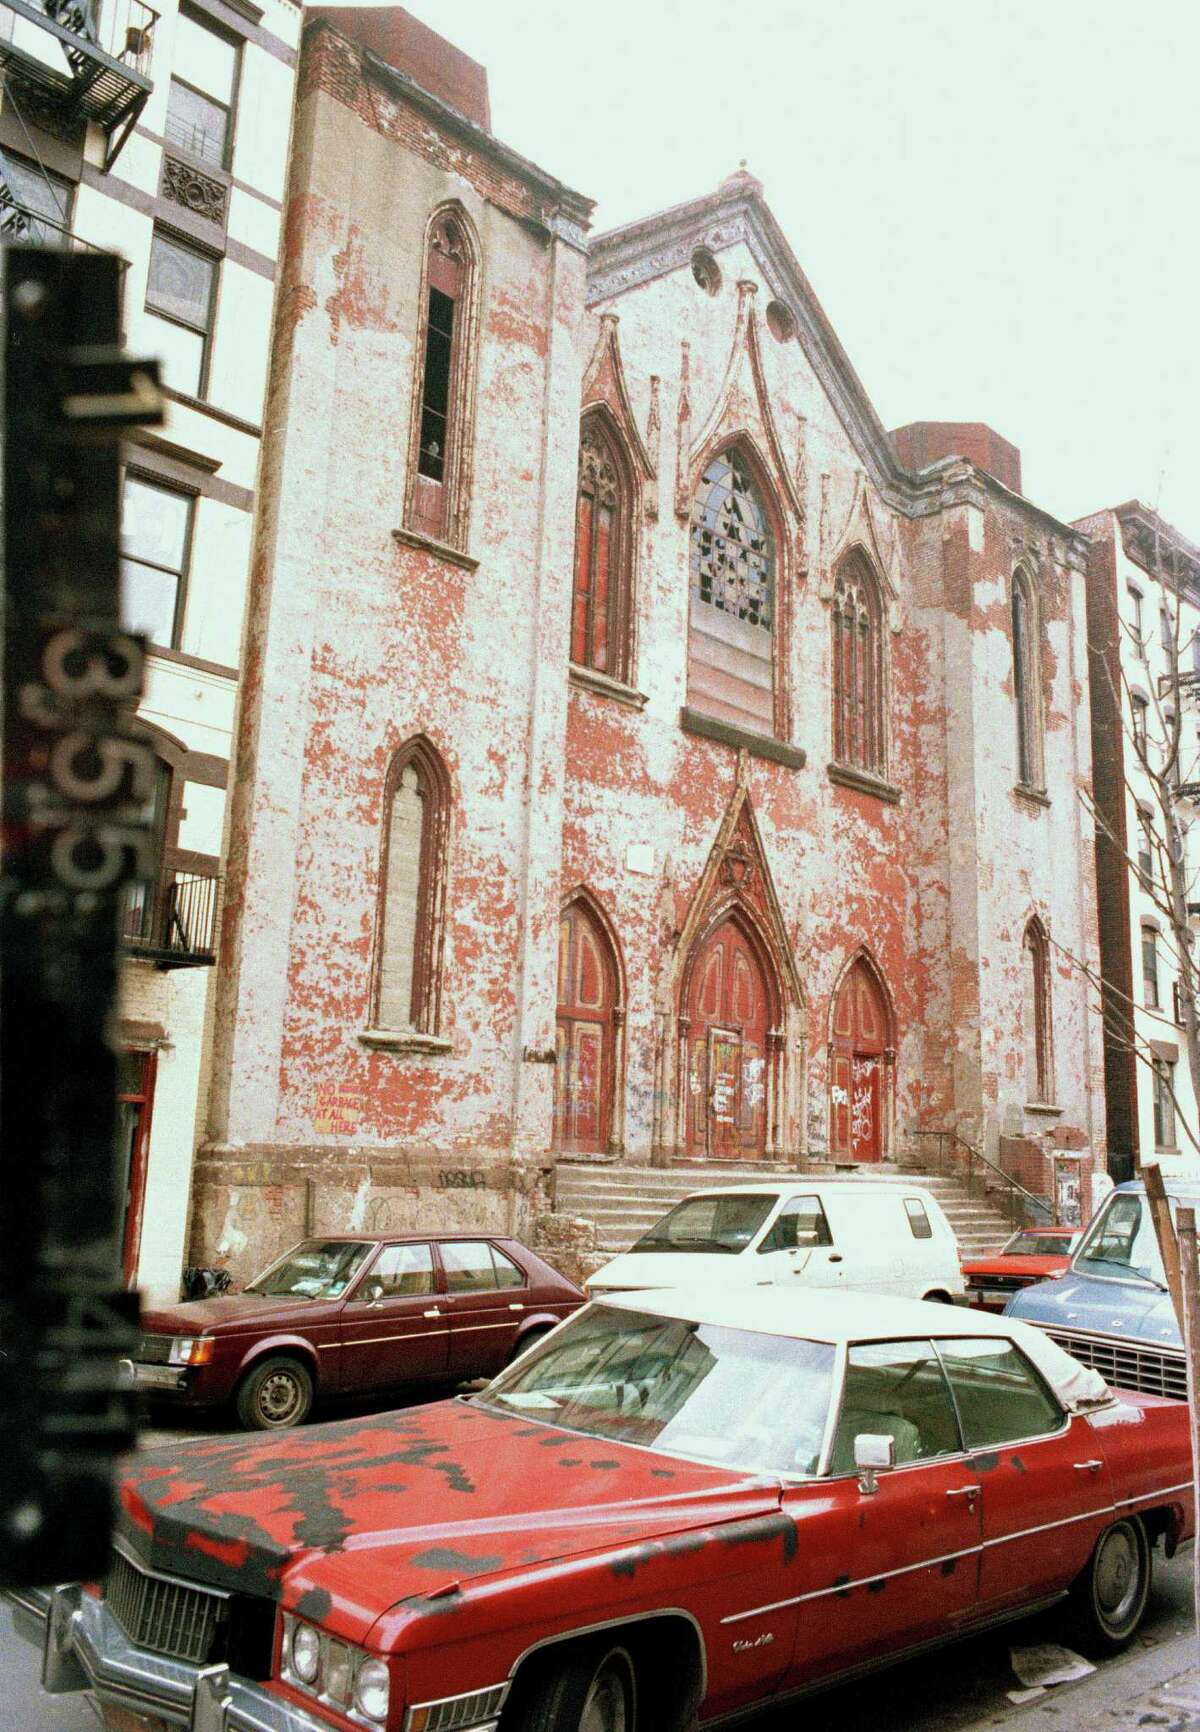 This circa 1983-1988 photo provided by the New York City Municipal Archives shows 172 Norfolk Street, which is now the Angel Orensanz Foundation, in New York. Over 800,000 color photographs were taken with 35-mm cameras for tax purposes. Every New York City building in the mid-1980s can be viewed in this collection. Over 870,000 photos from an archive that exceeds 2.2 million images have been scanned and made available online, for the first time giving a global audience a view of a rich collection that documents life in New York City.